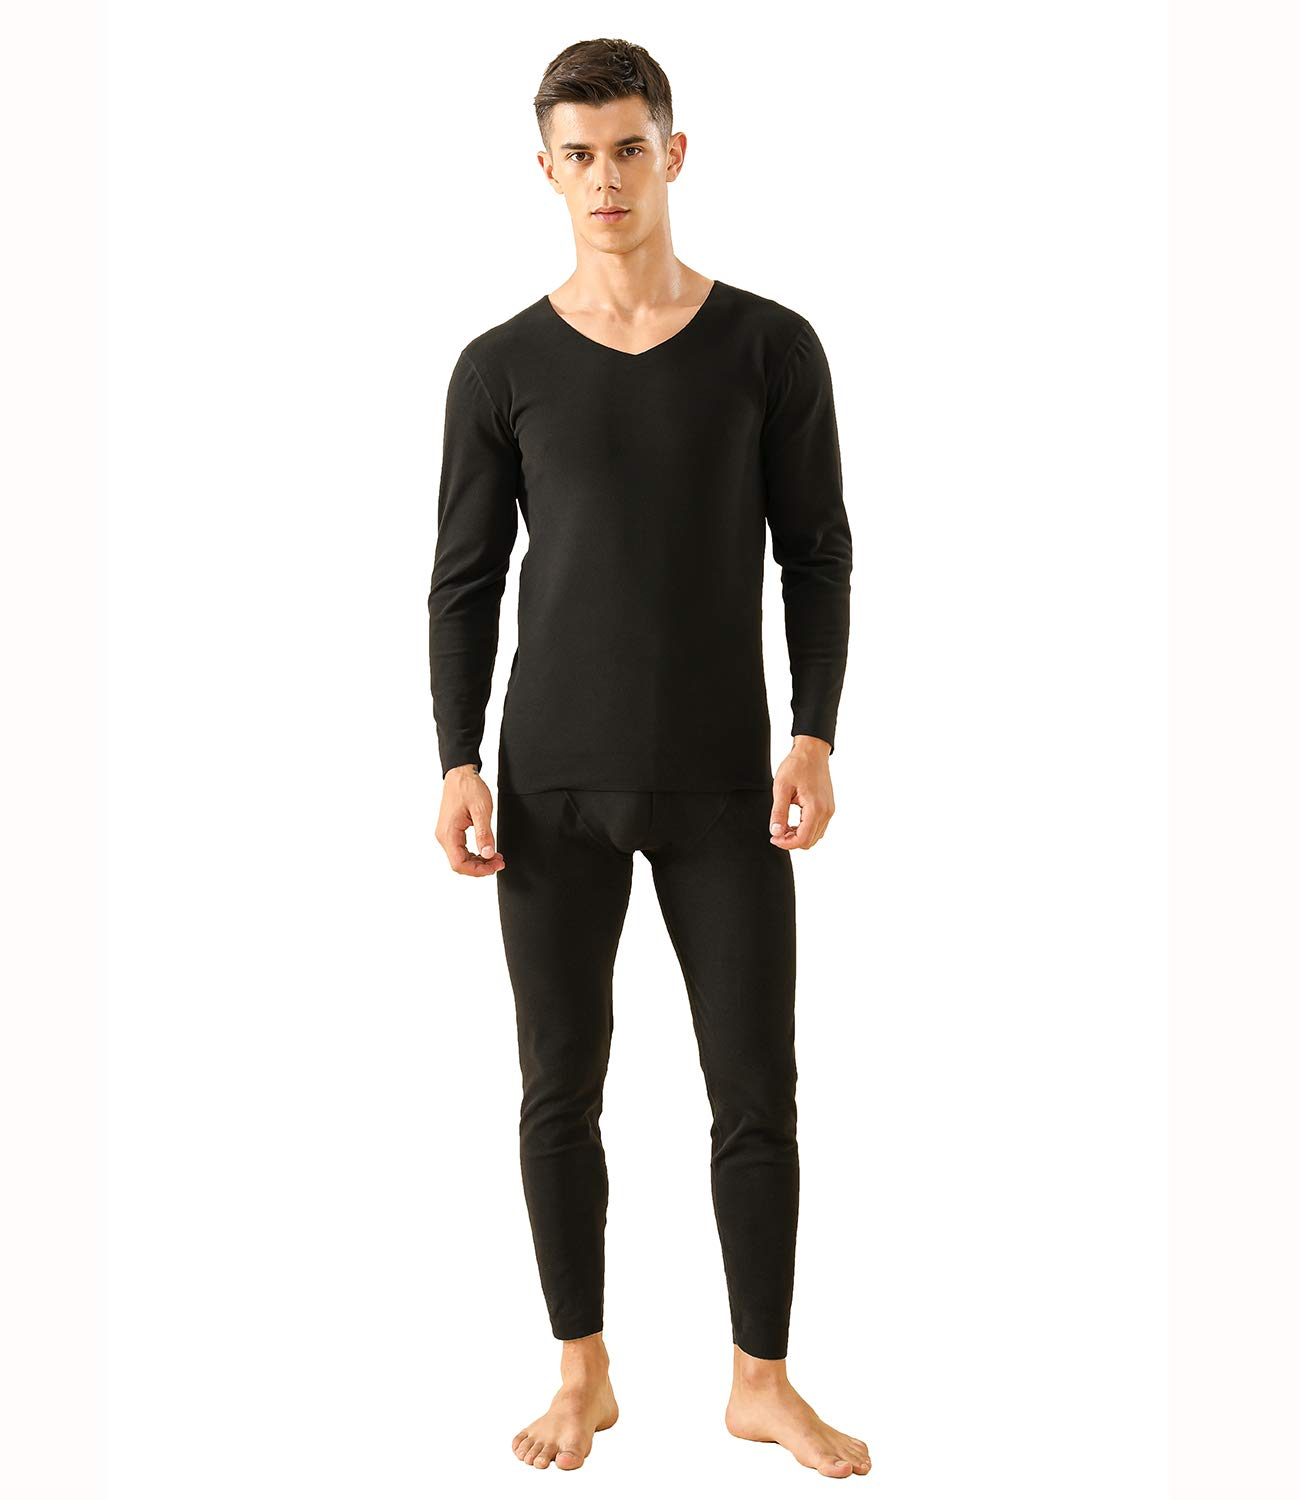 Men's Invisible Thermal Underwear Fleece Thermals Base Layer Long John Set (Black, XL) by WOFFMX